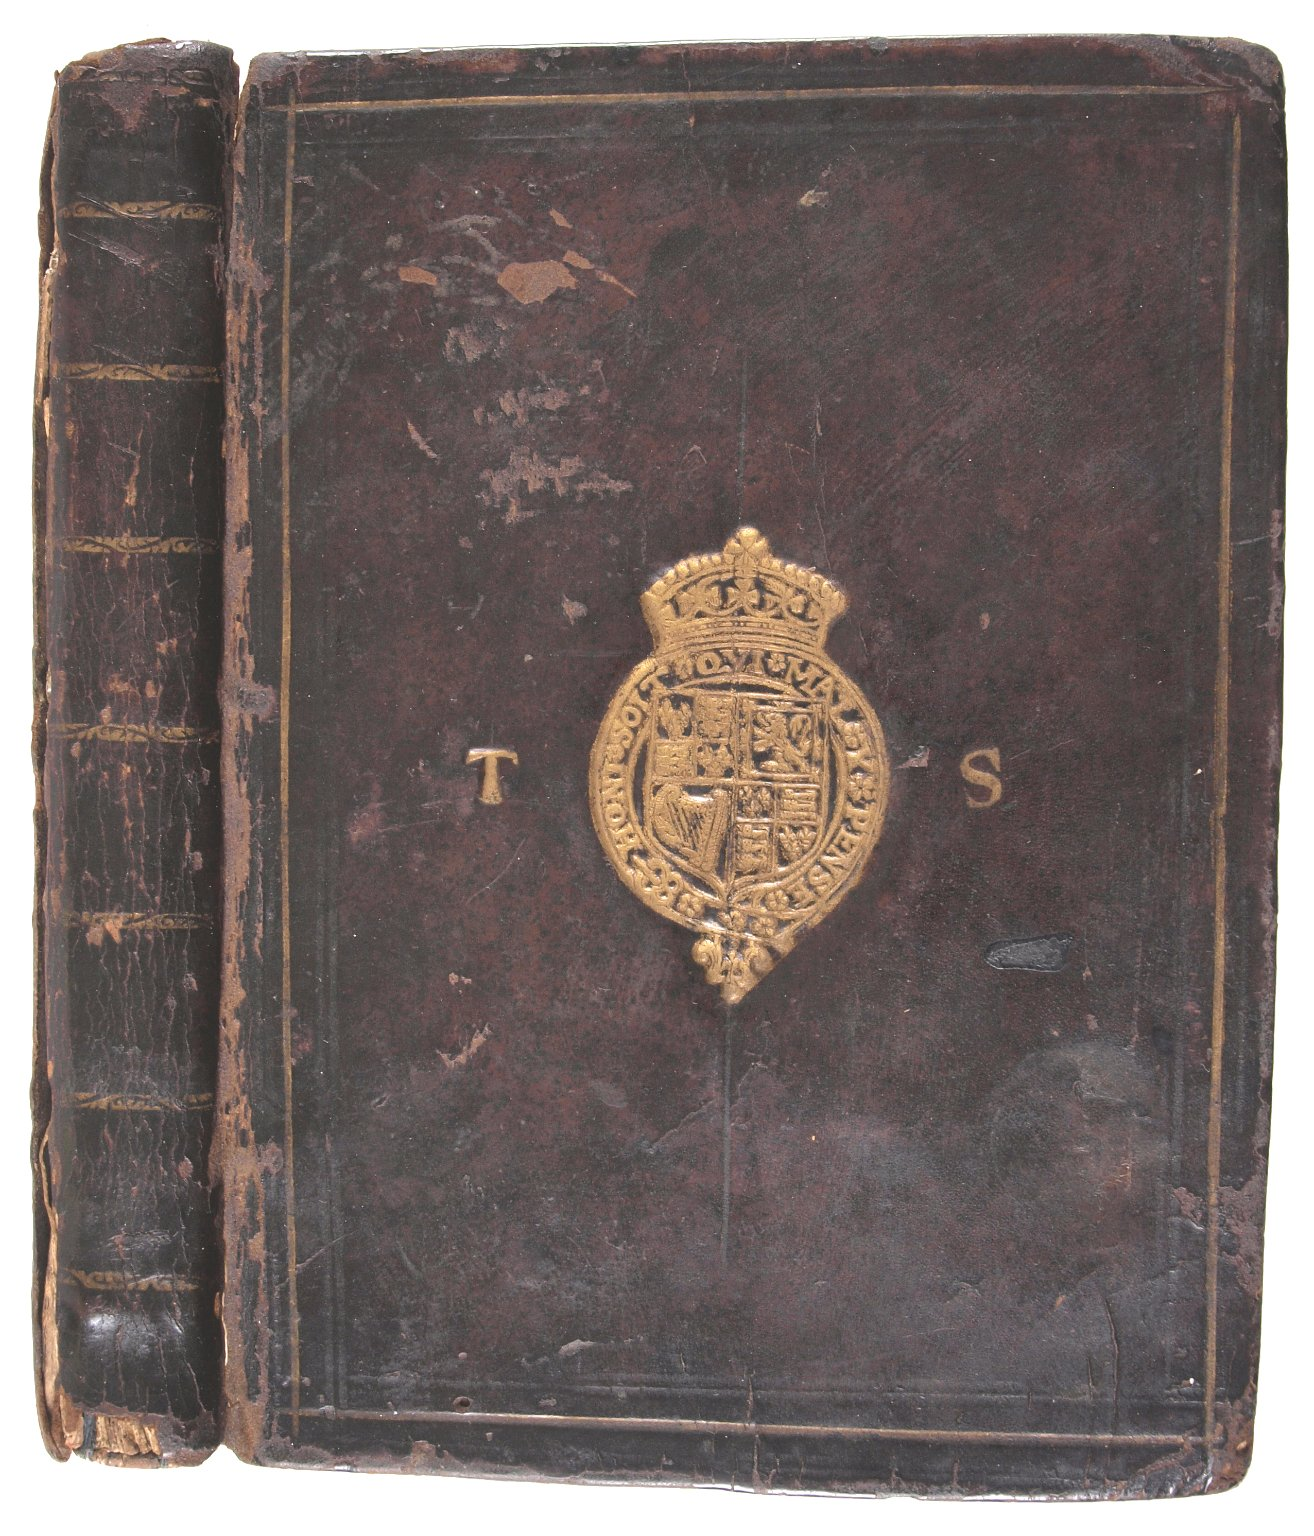 Front cover and spine, STC 6431 copy 2.